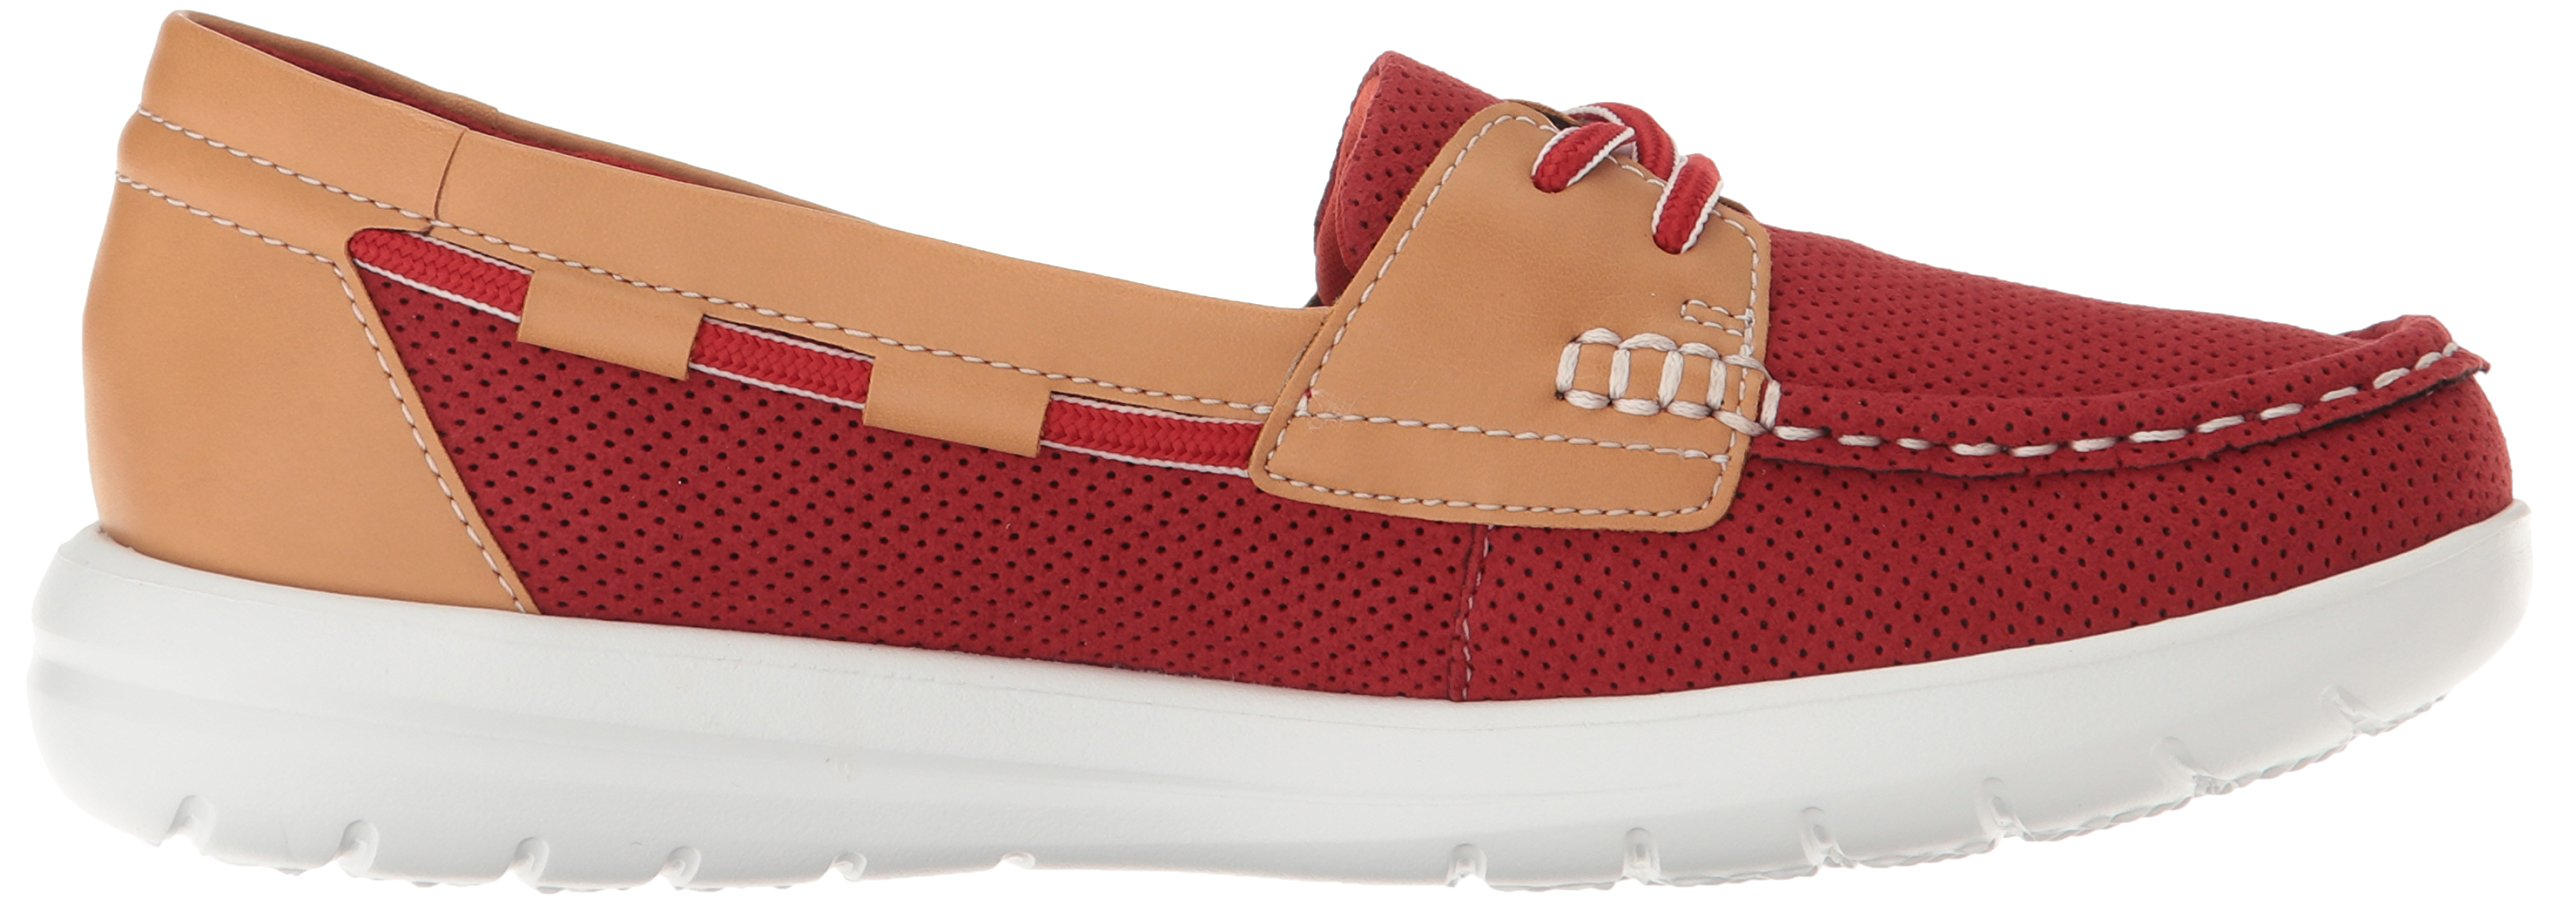 CLARKS Women's Jocolin Vista Boat Shoe, Red Perforated Microfiber, 12 B(M) US by CLARKS (Image #6)